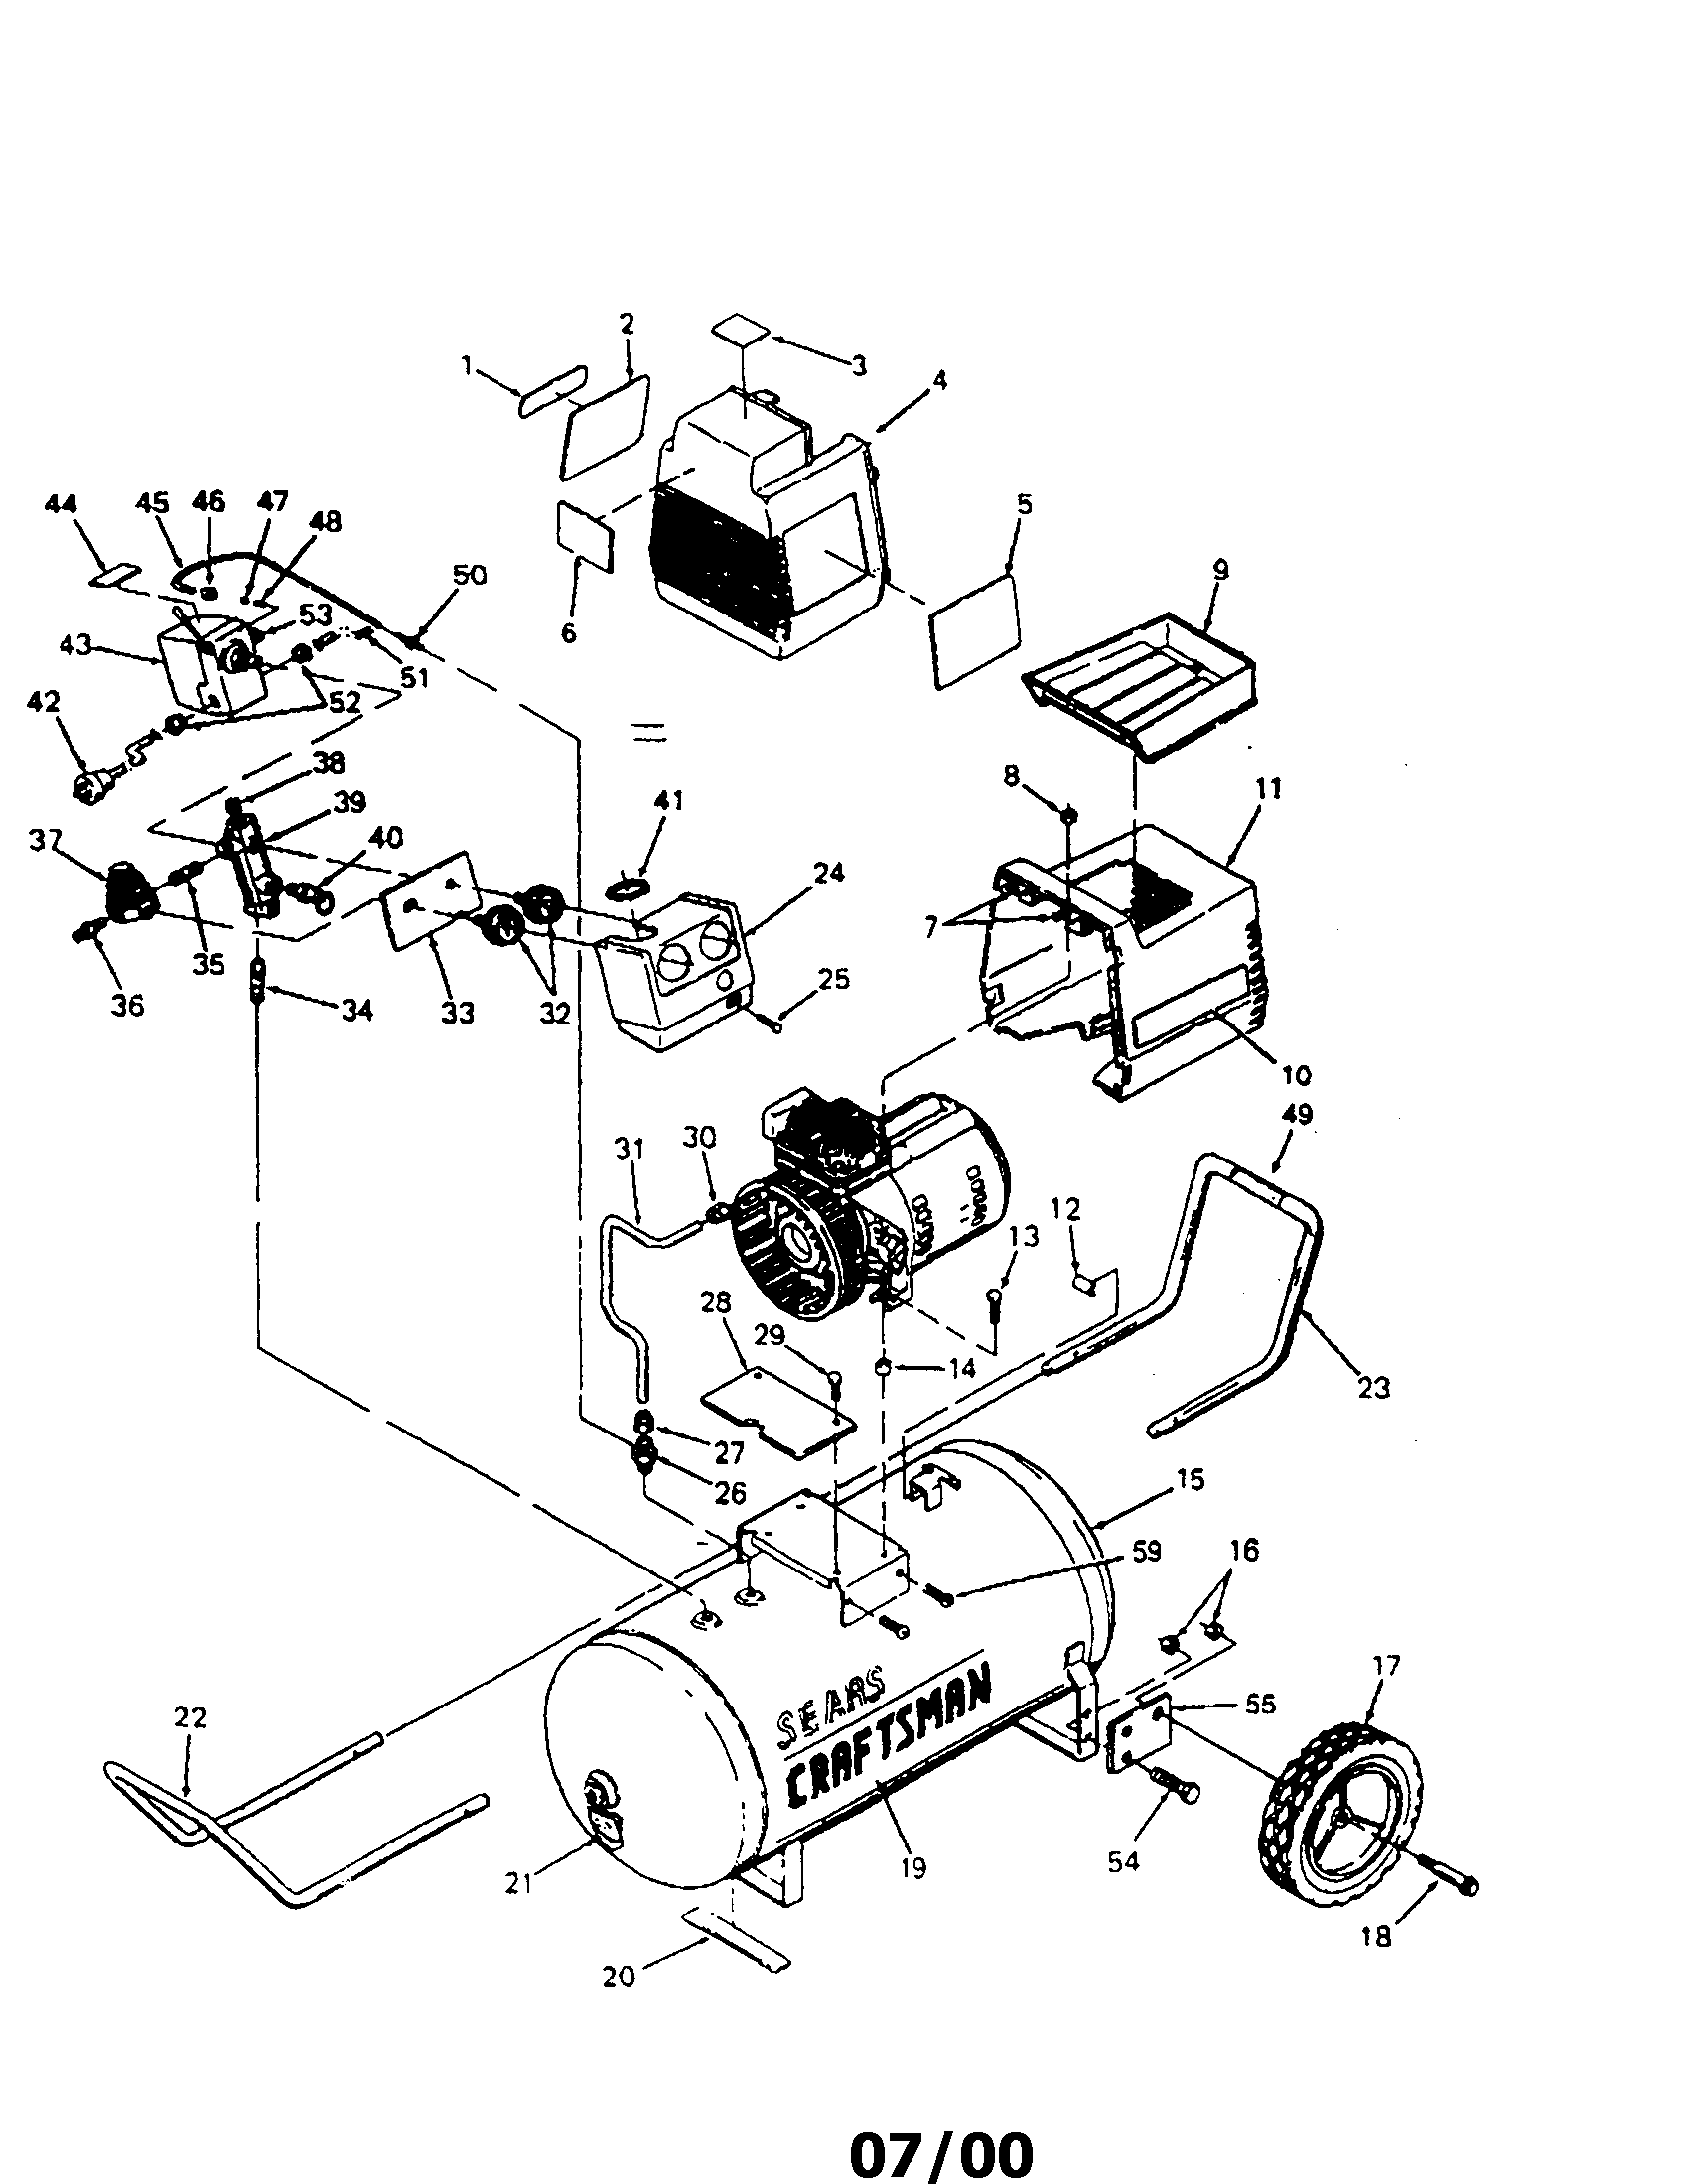 919.153231_craftsman_compressor_parts 919 153231 sears craftsman air compressor parts abac air compressor wiring diagram at fashall.co